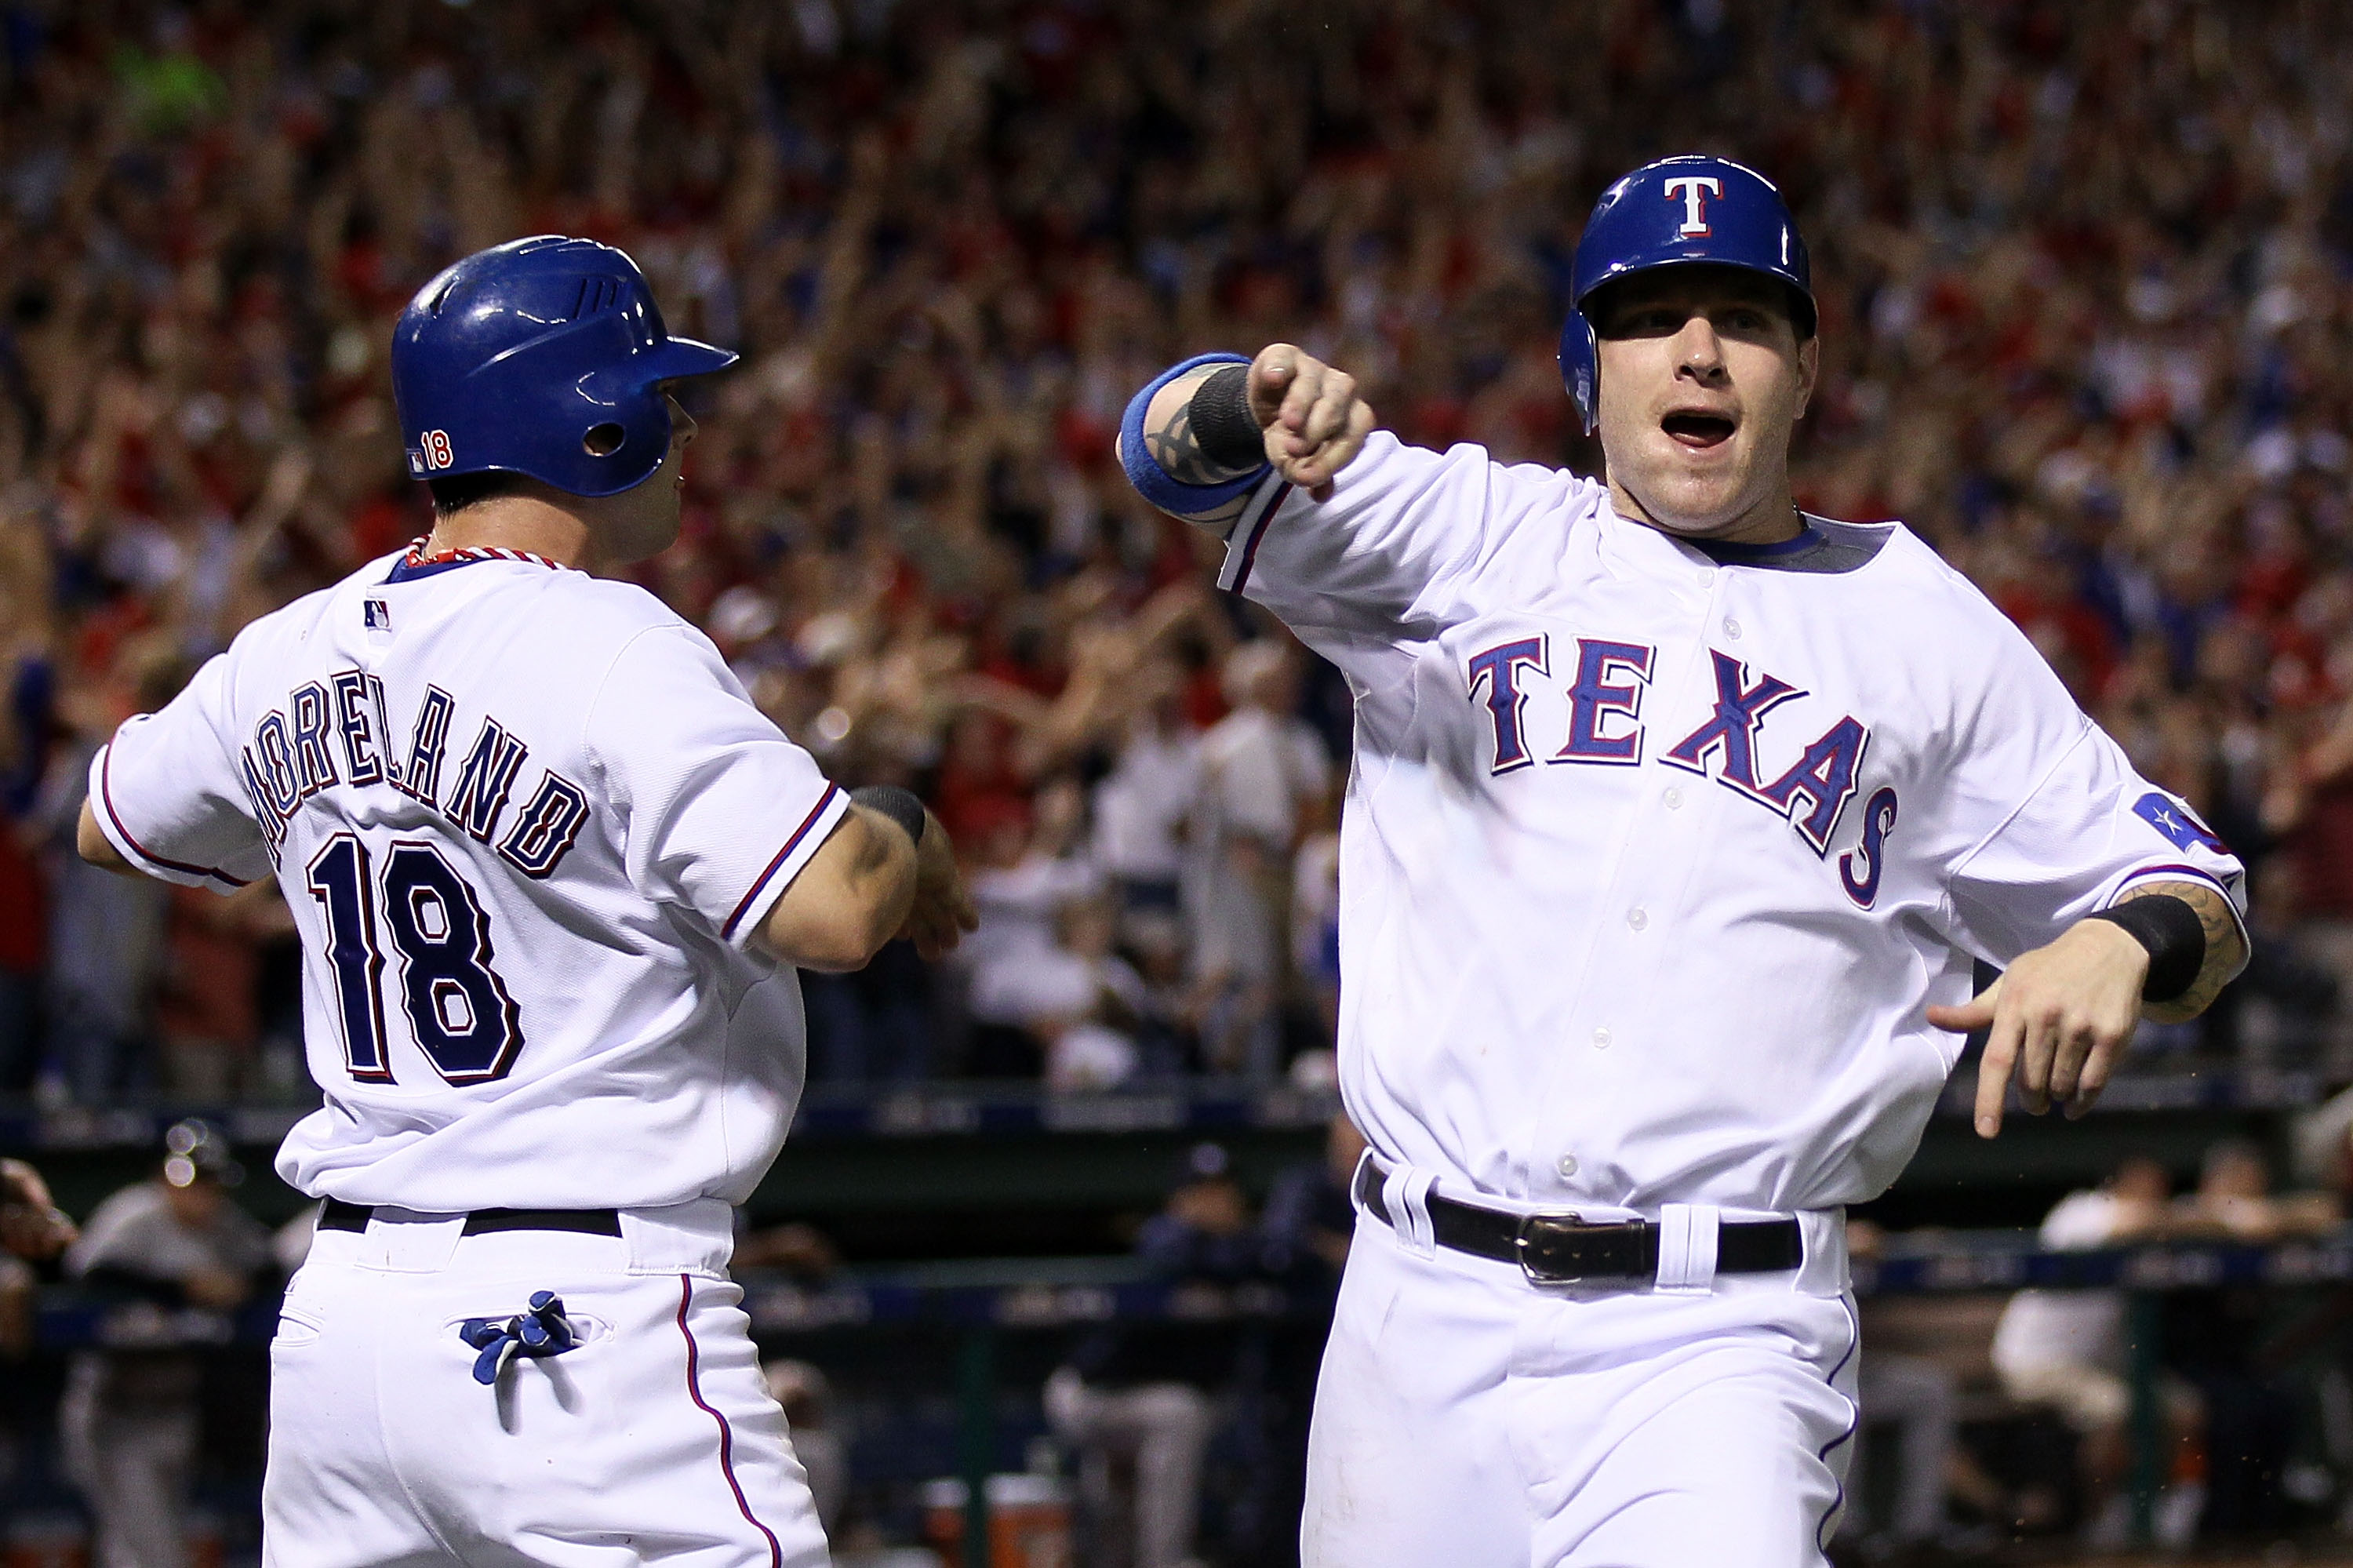 ARLINGTON, TX - OCTOBER 22:  (L-R) Mitch Moreland #18 and Josh Hamilton #32 of the Texas Rangers celebrate after they scored on a 2-run double by Vladimir Guerrero #27 ini the bottom of the fifth inning against the New York Yankees in Game Six of the ALCS